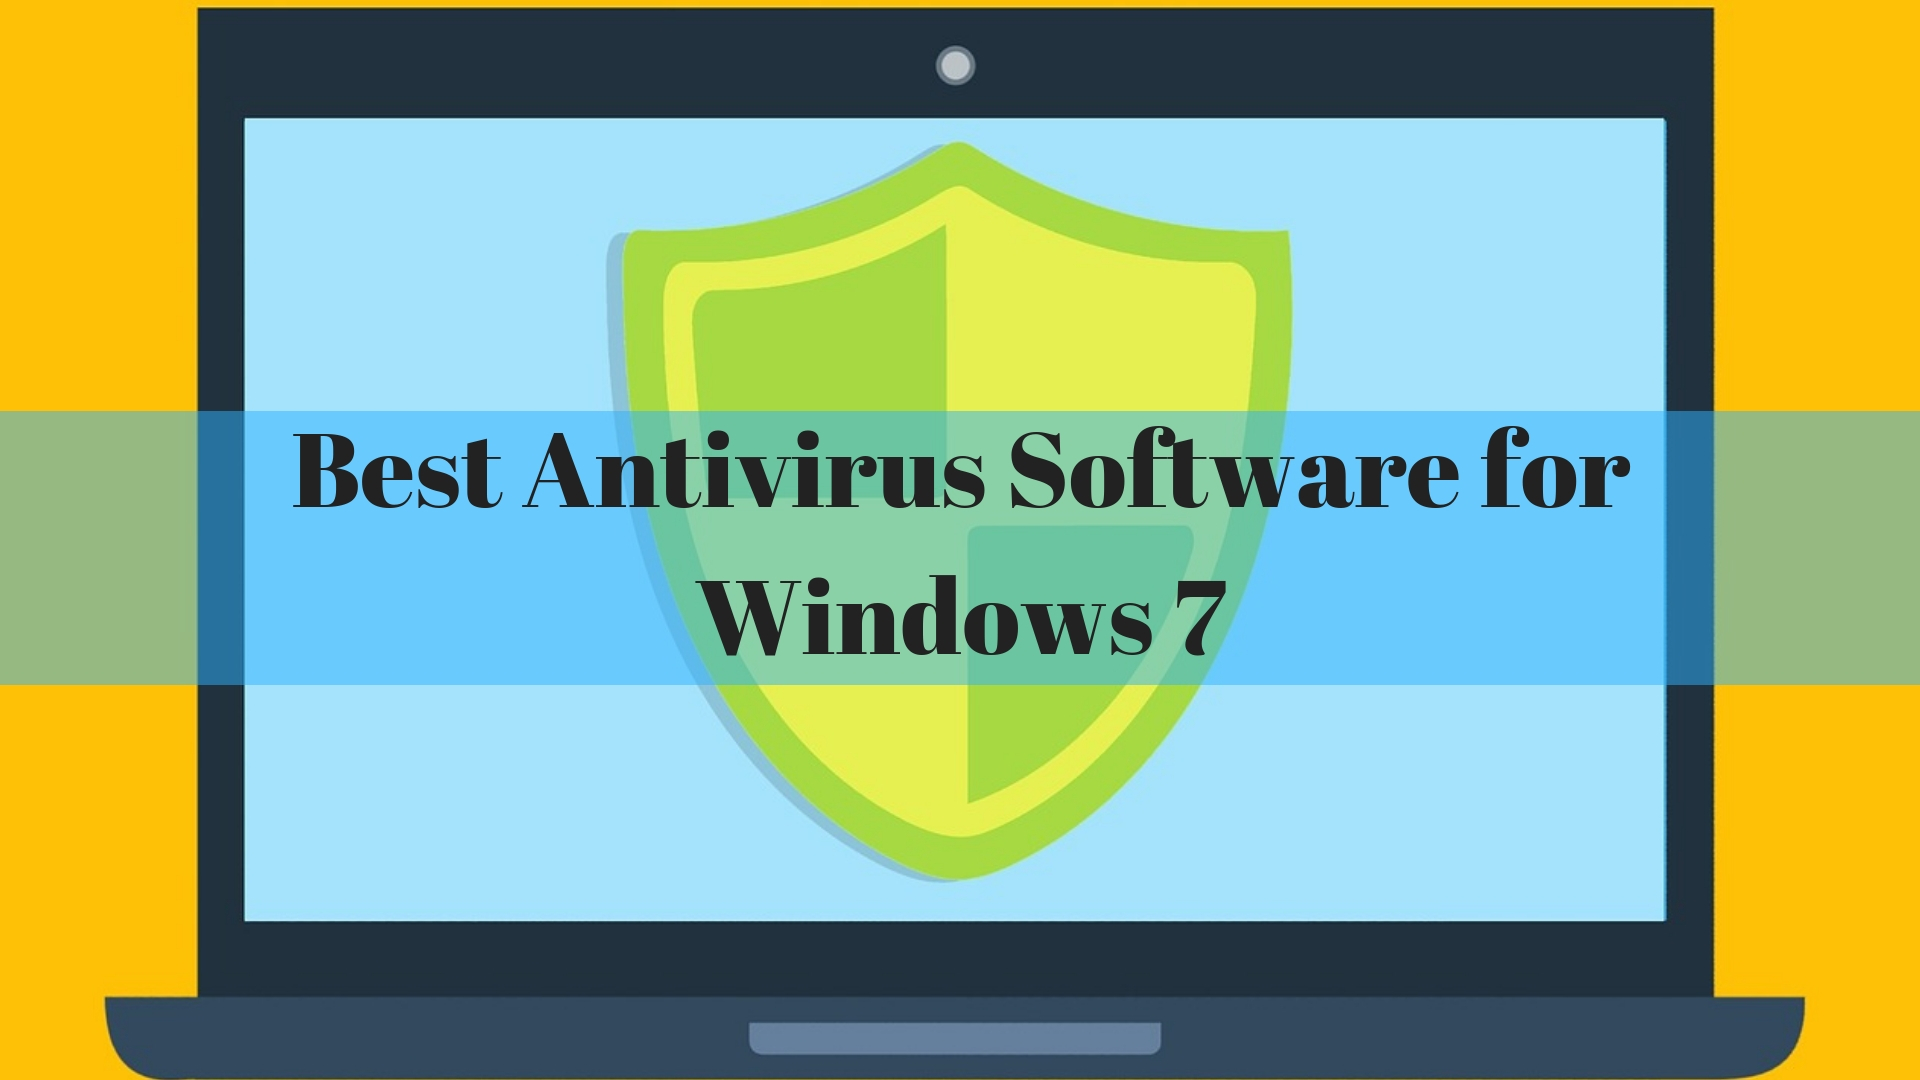 List of 9 Best Antivirus Software for Windows 7